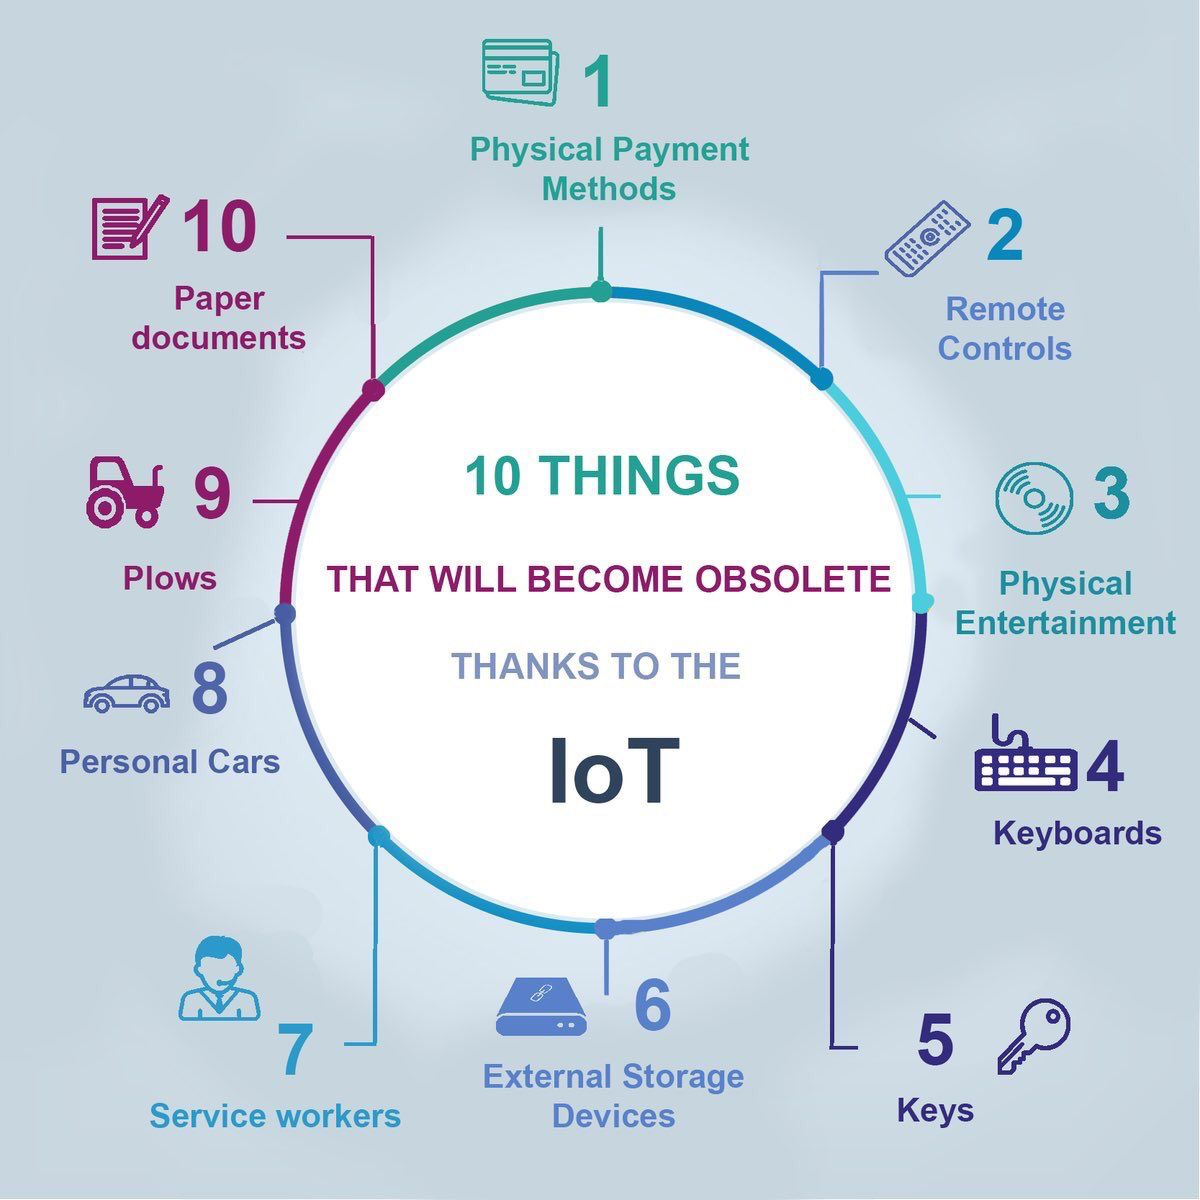 10 things that will become obsolete thanks to IoT